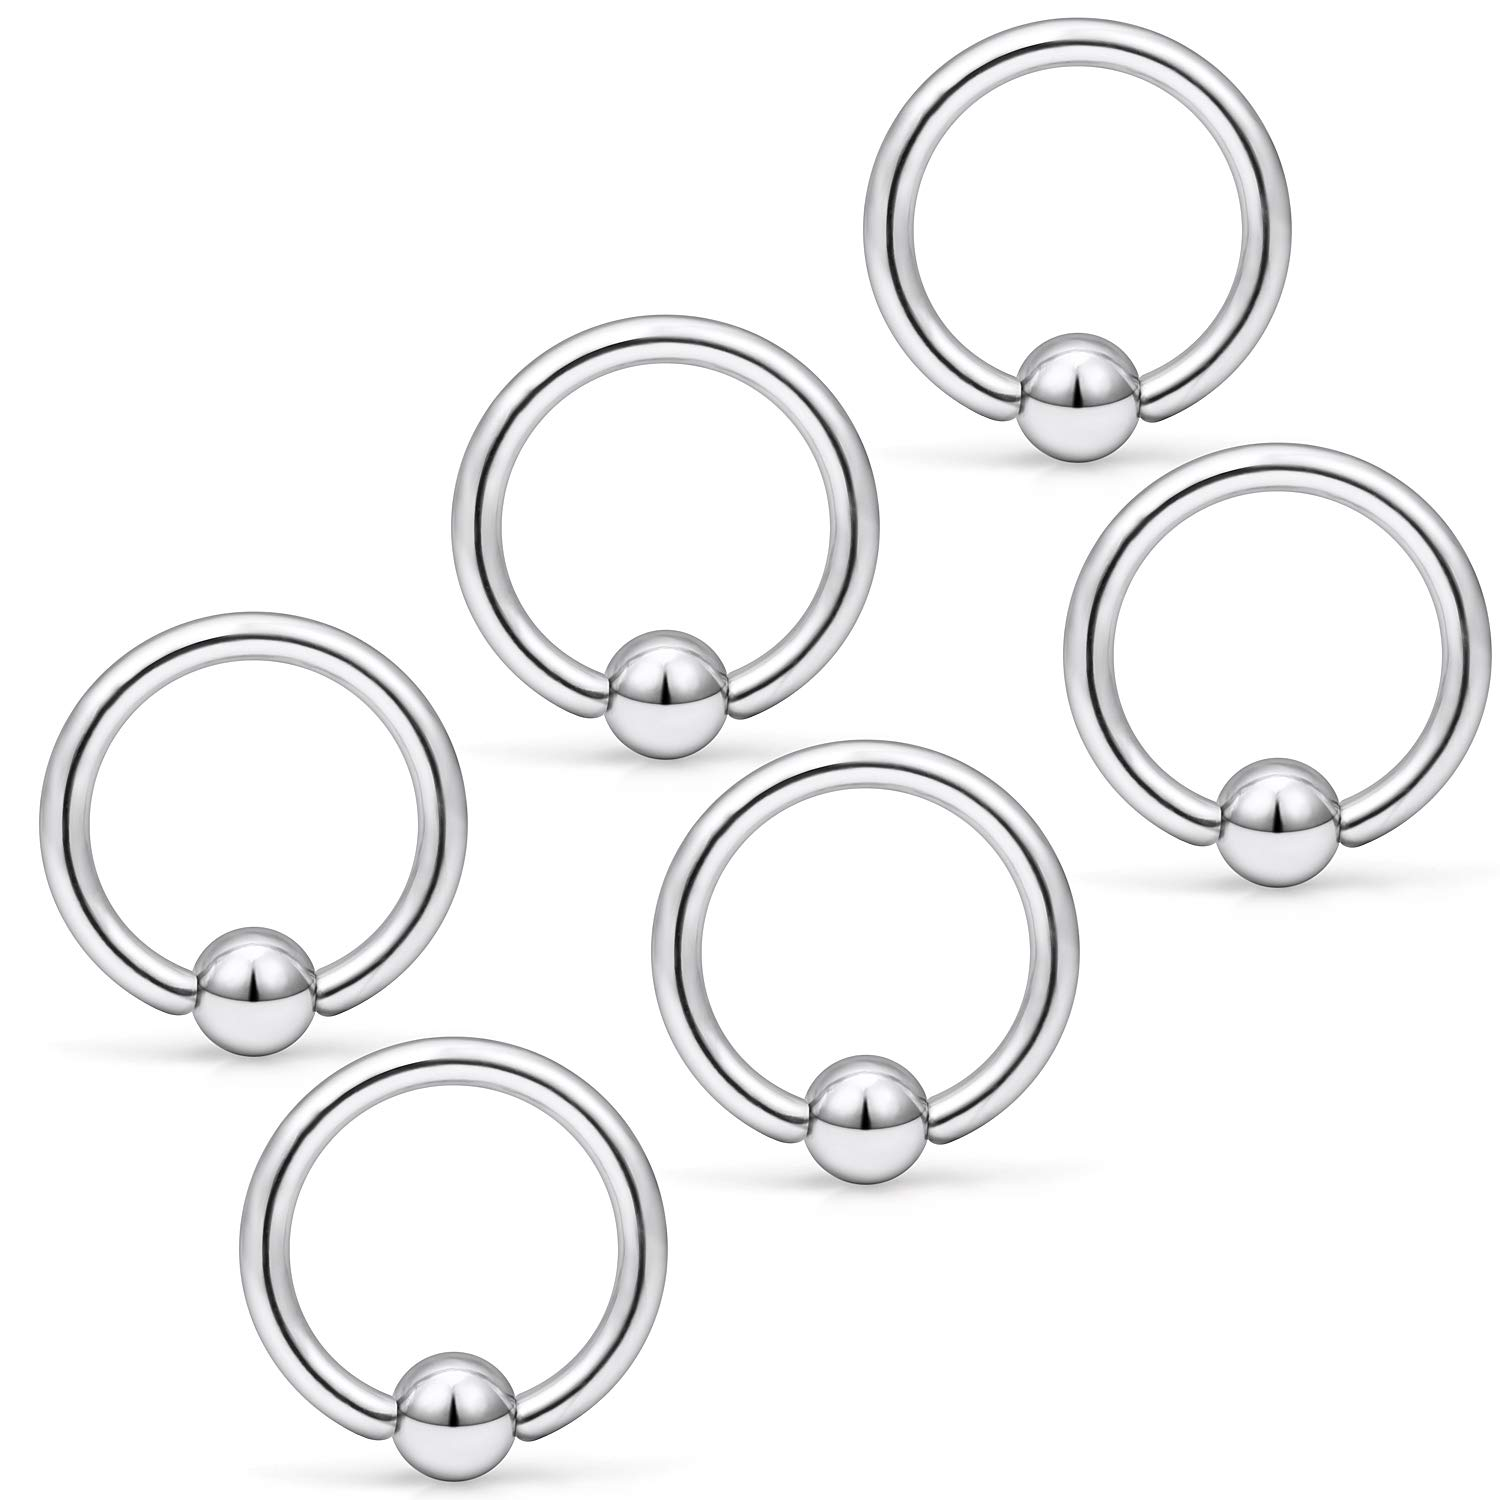 Yaalozei 6PCS 14G Stainless Steel Captive Bead Nose Hoop Rings Eyebrow Cartilage Nipple Tongue Belly Earring Septum Ring Piercing Jewelry for Men Women 8-14mm YLZ1071